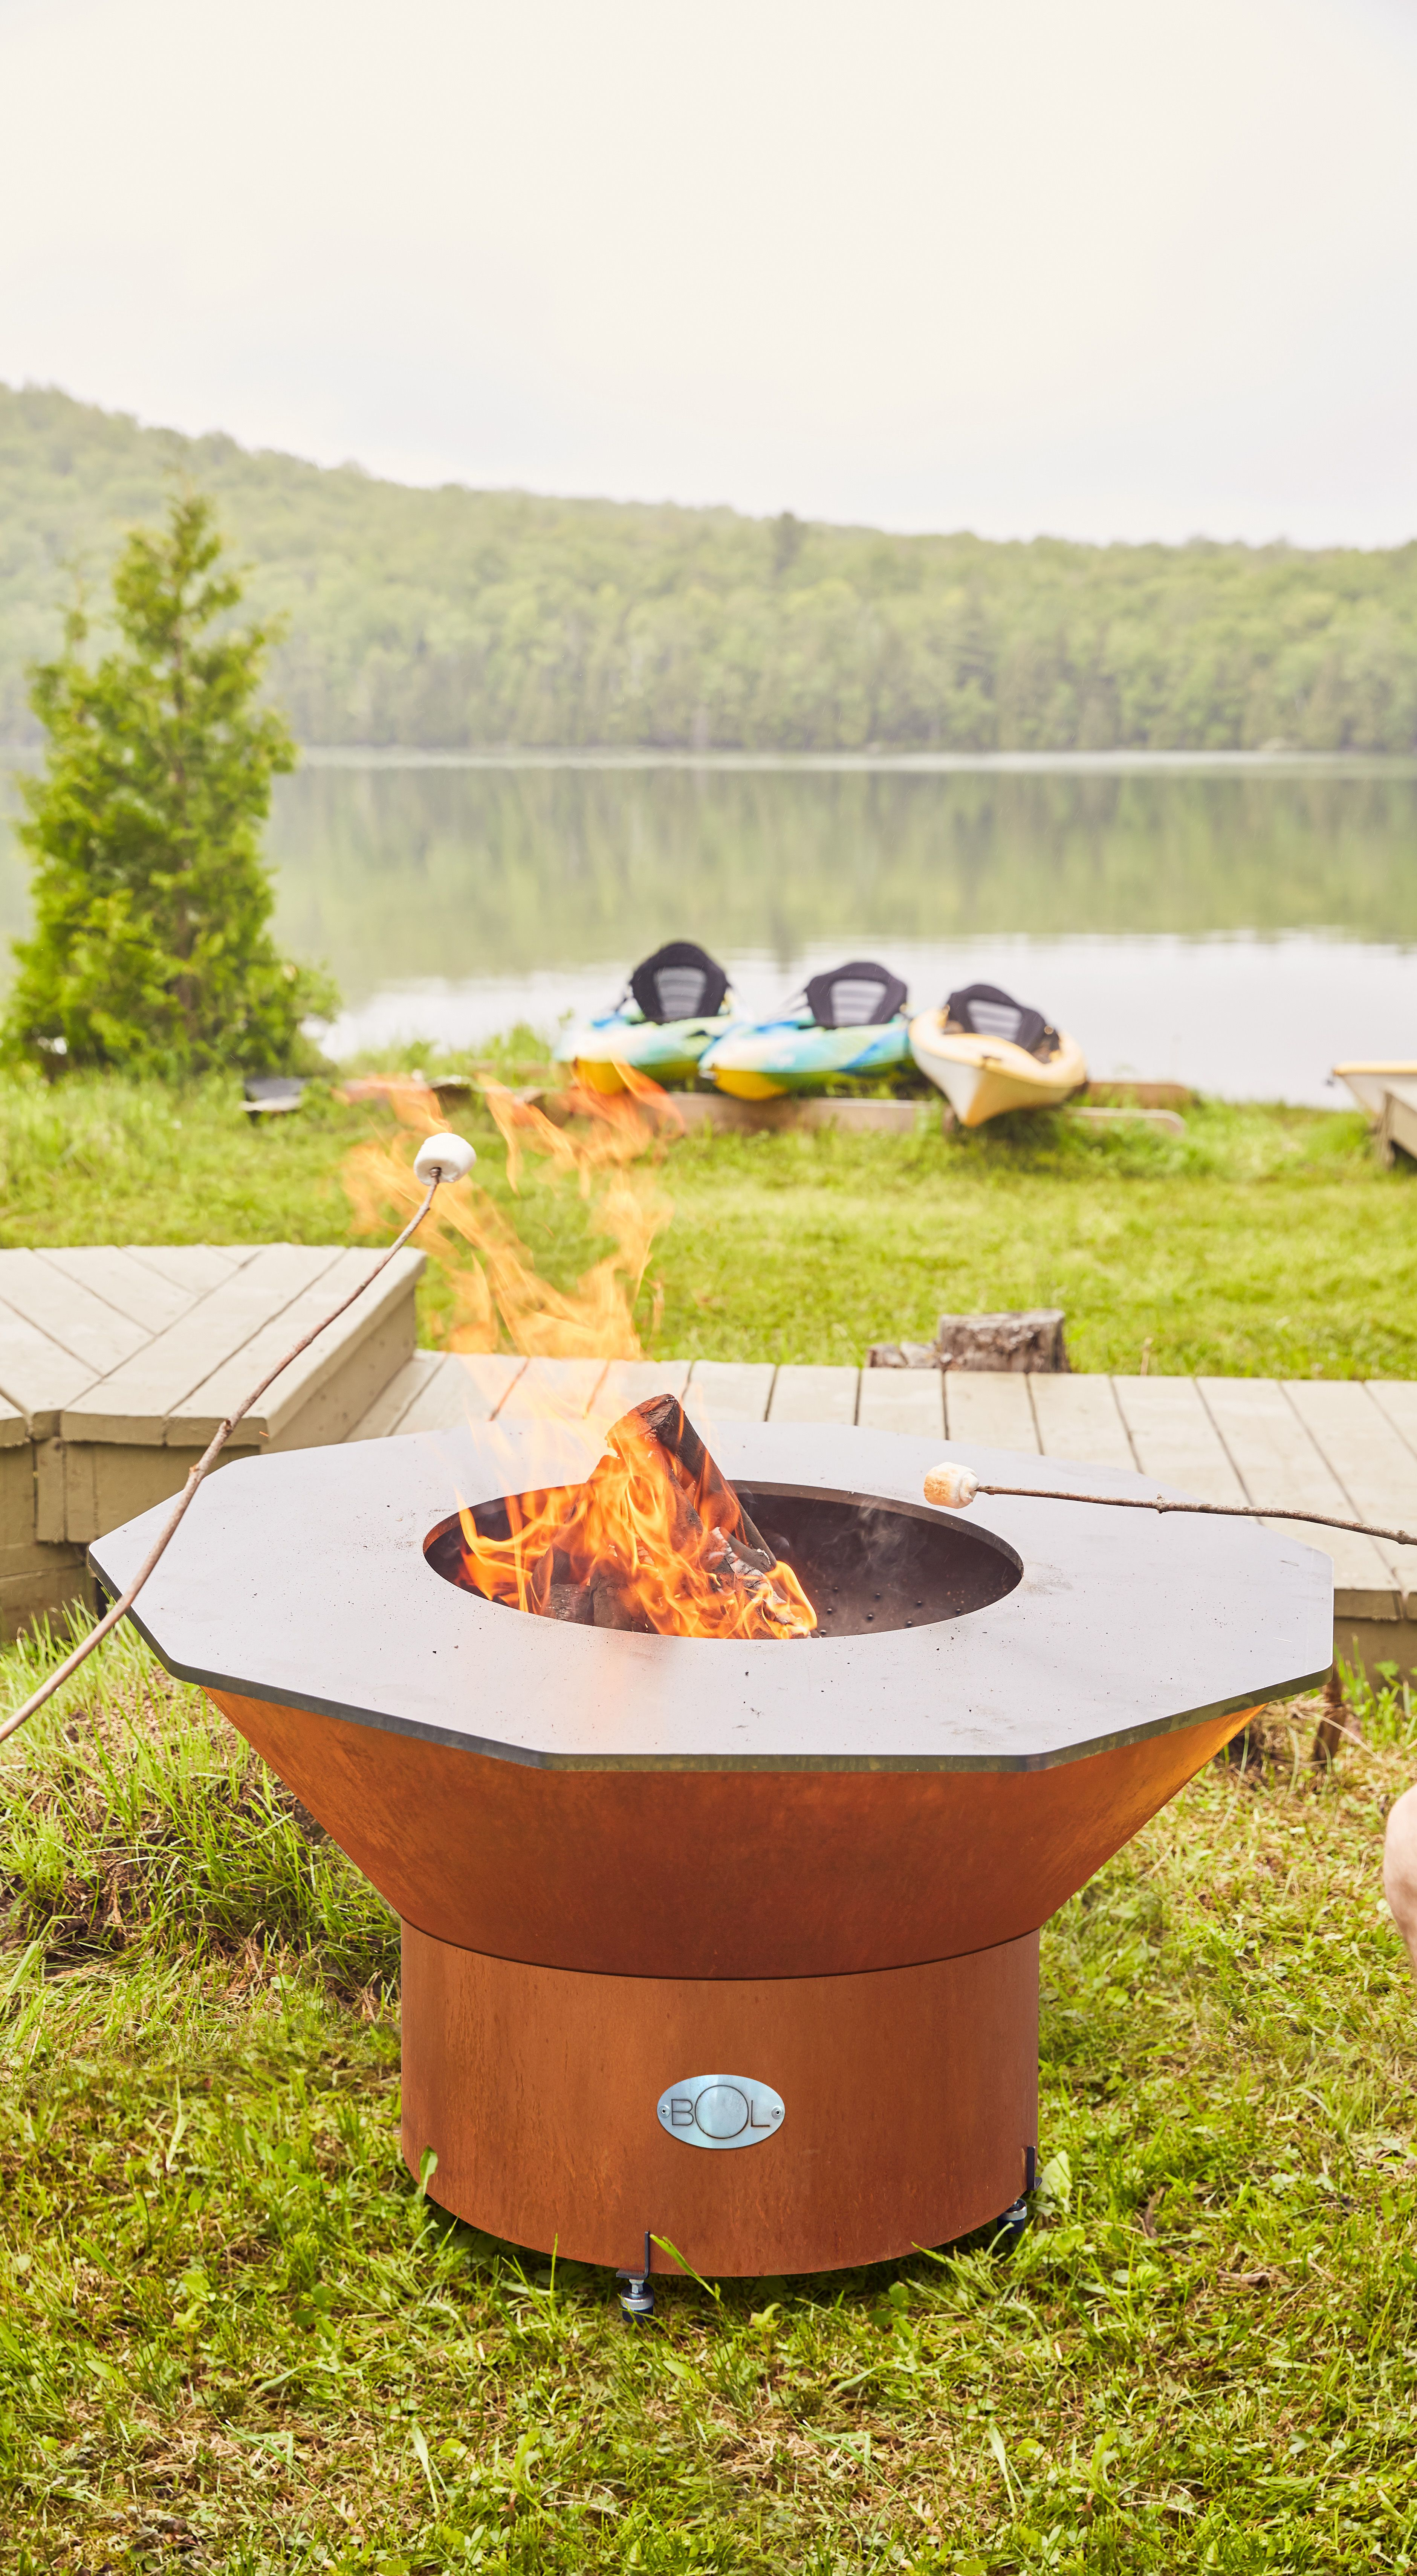 Le Bol Grill With A Low 8 Pedestal Perfect For Relaxing By In Adirondack Chairs Grilling Sphere Design Bol